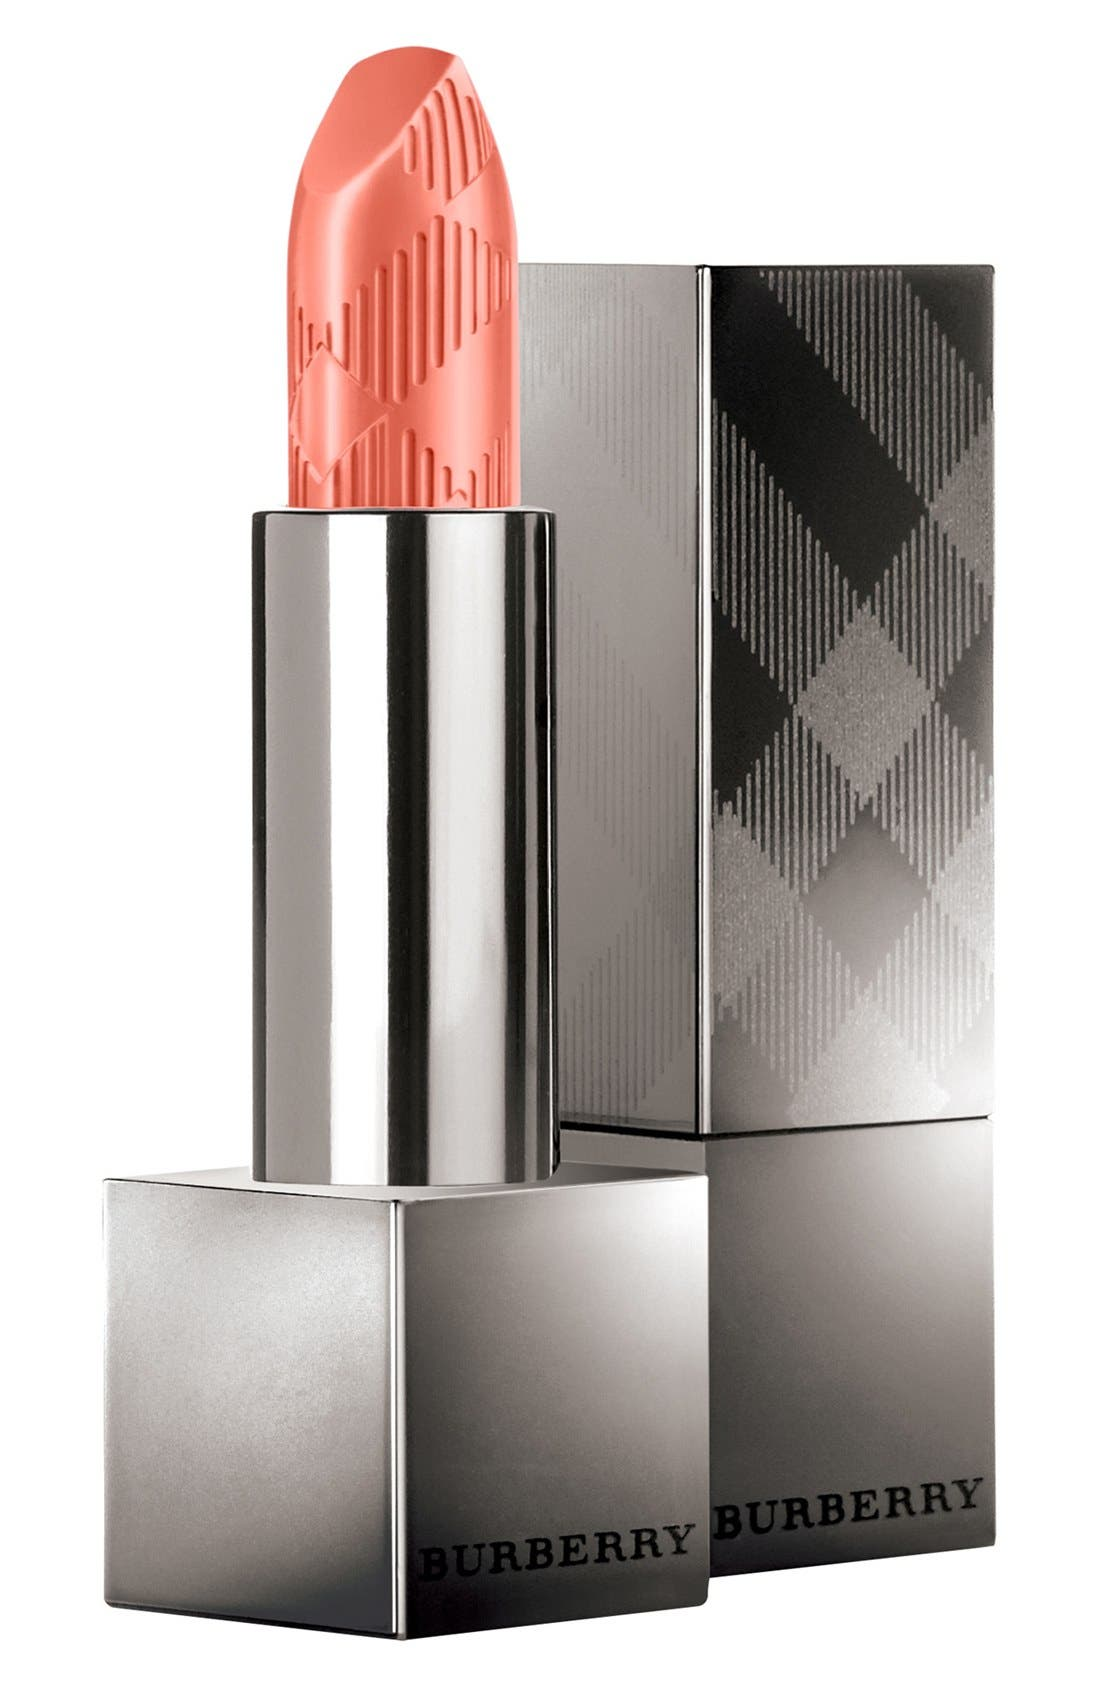 Burberry Beauty 'Burberry Kisses' Lipstick